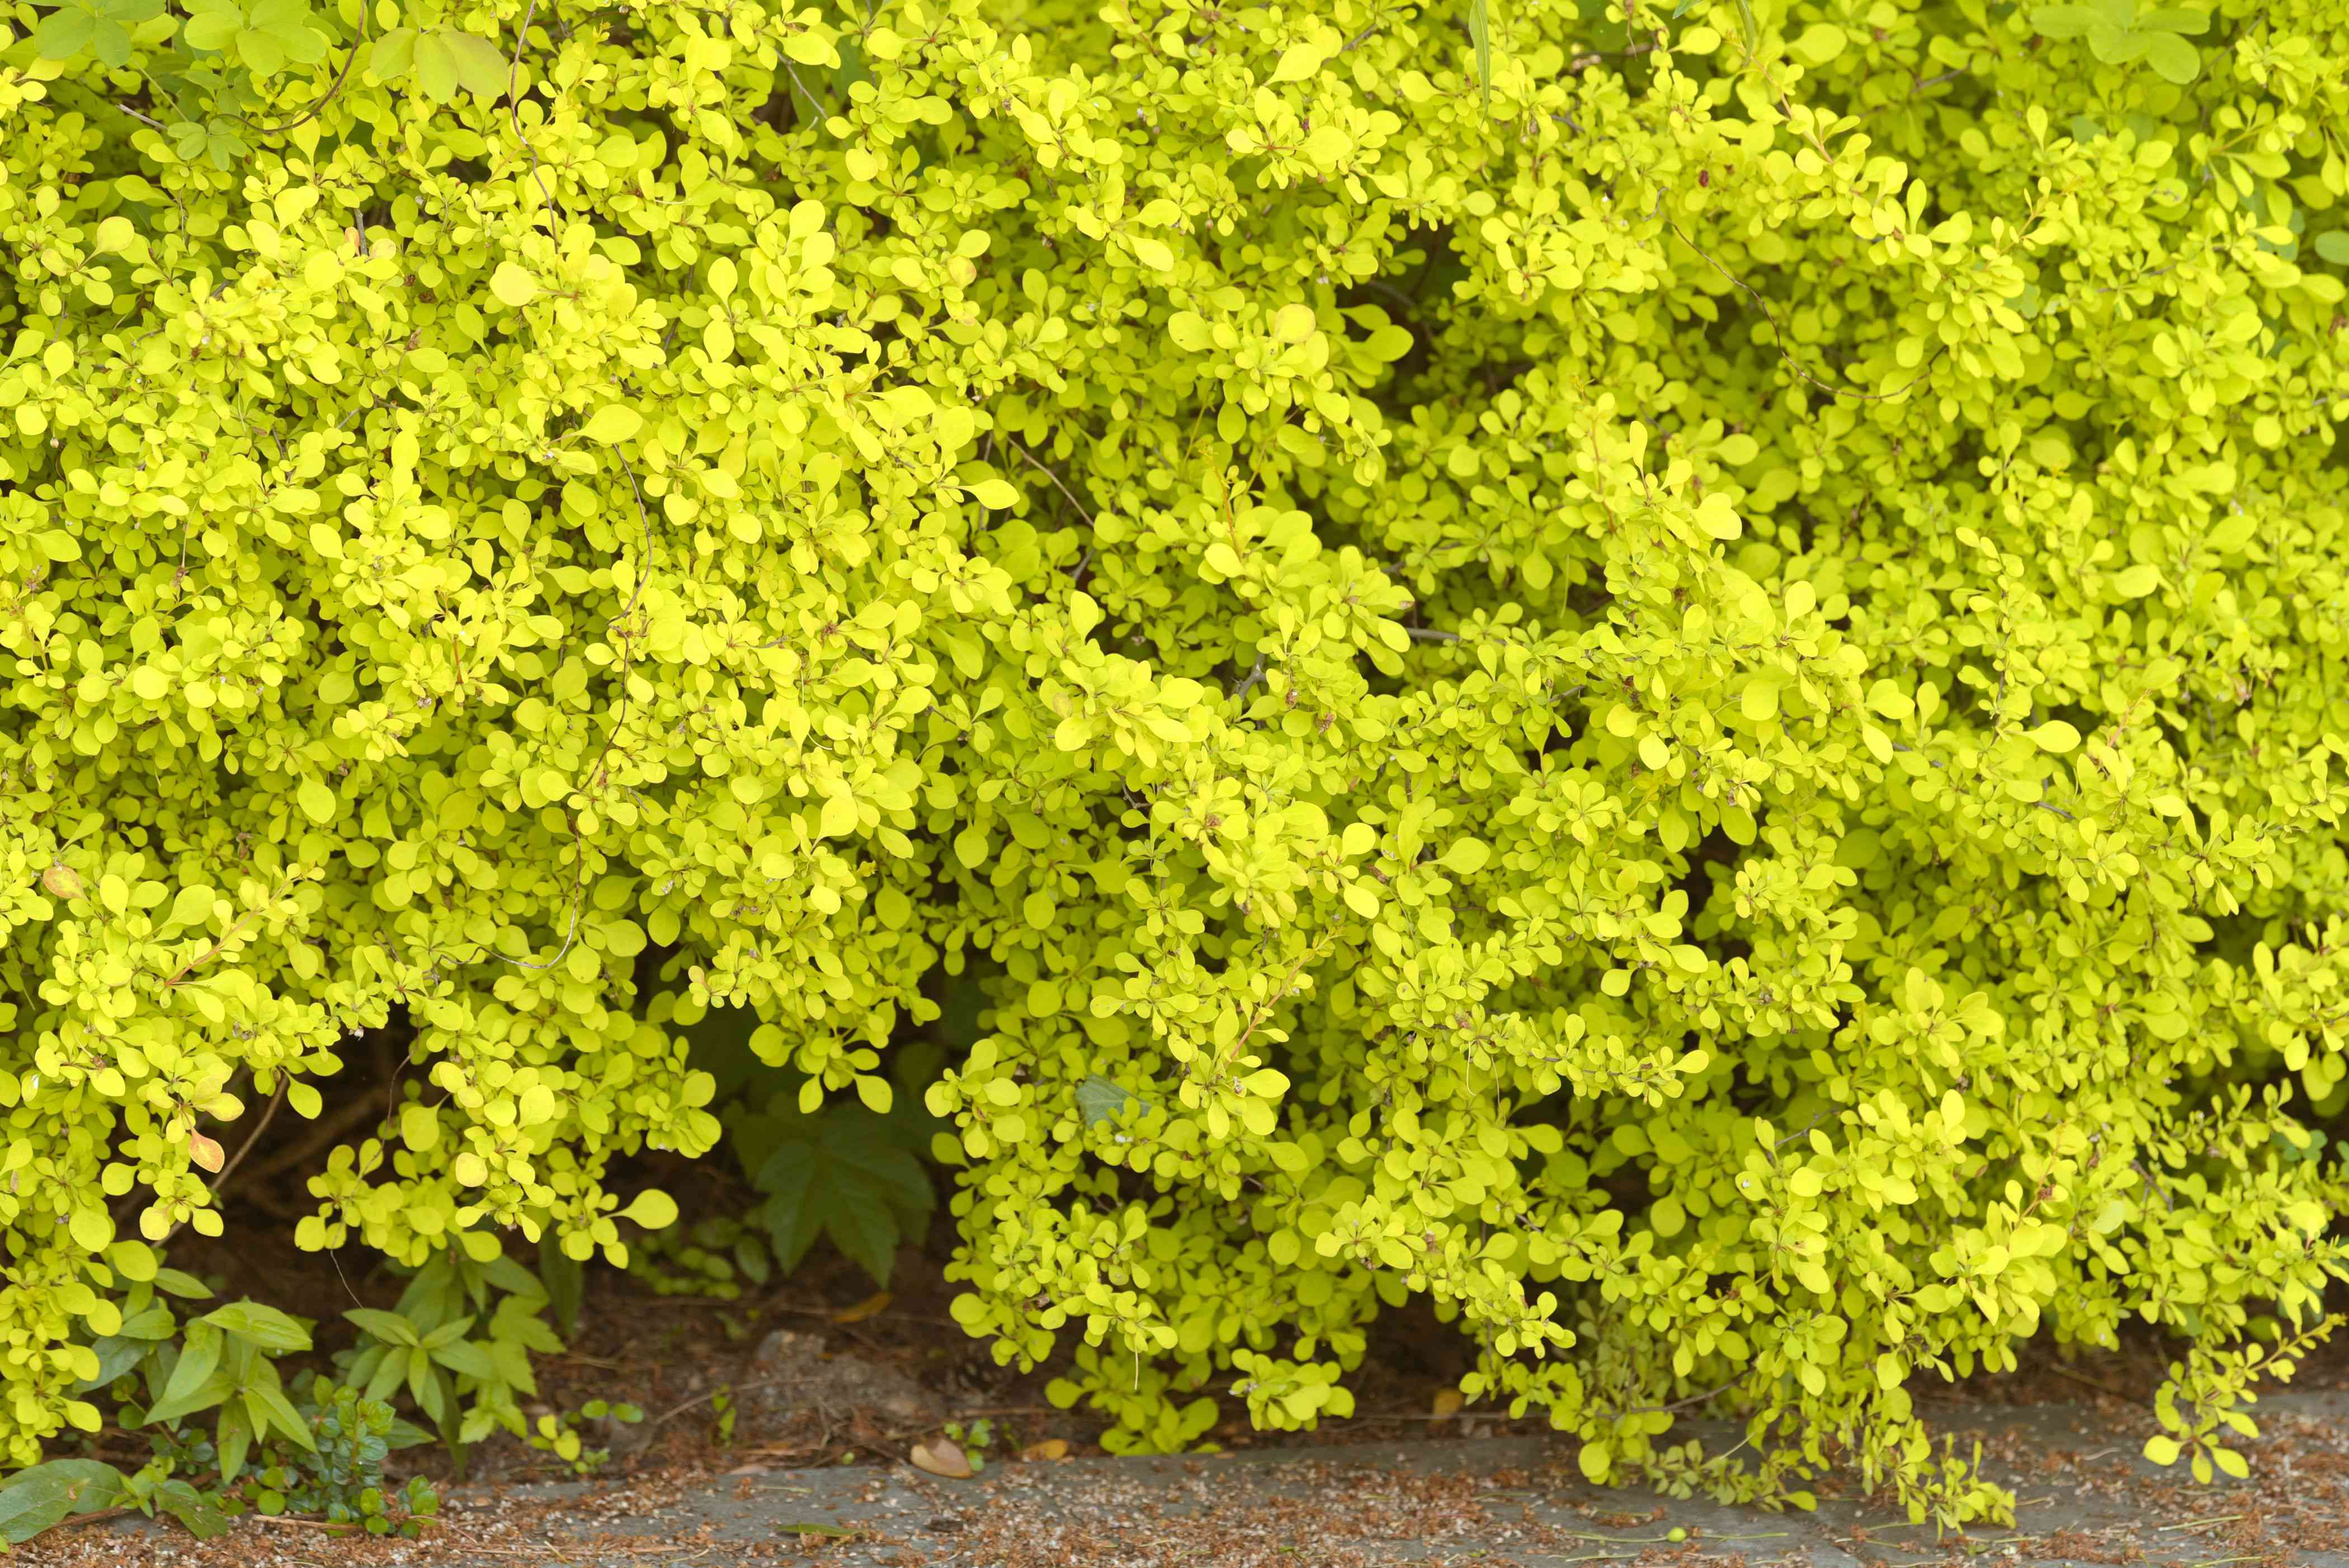 Barberry shrub with small yellow-green leaves clustered on branches